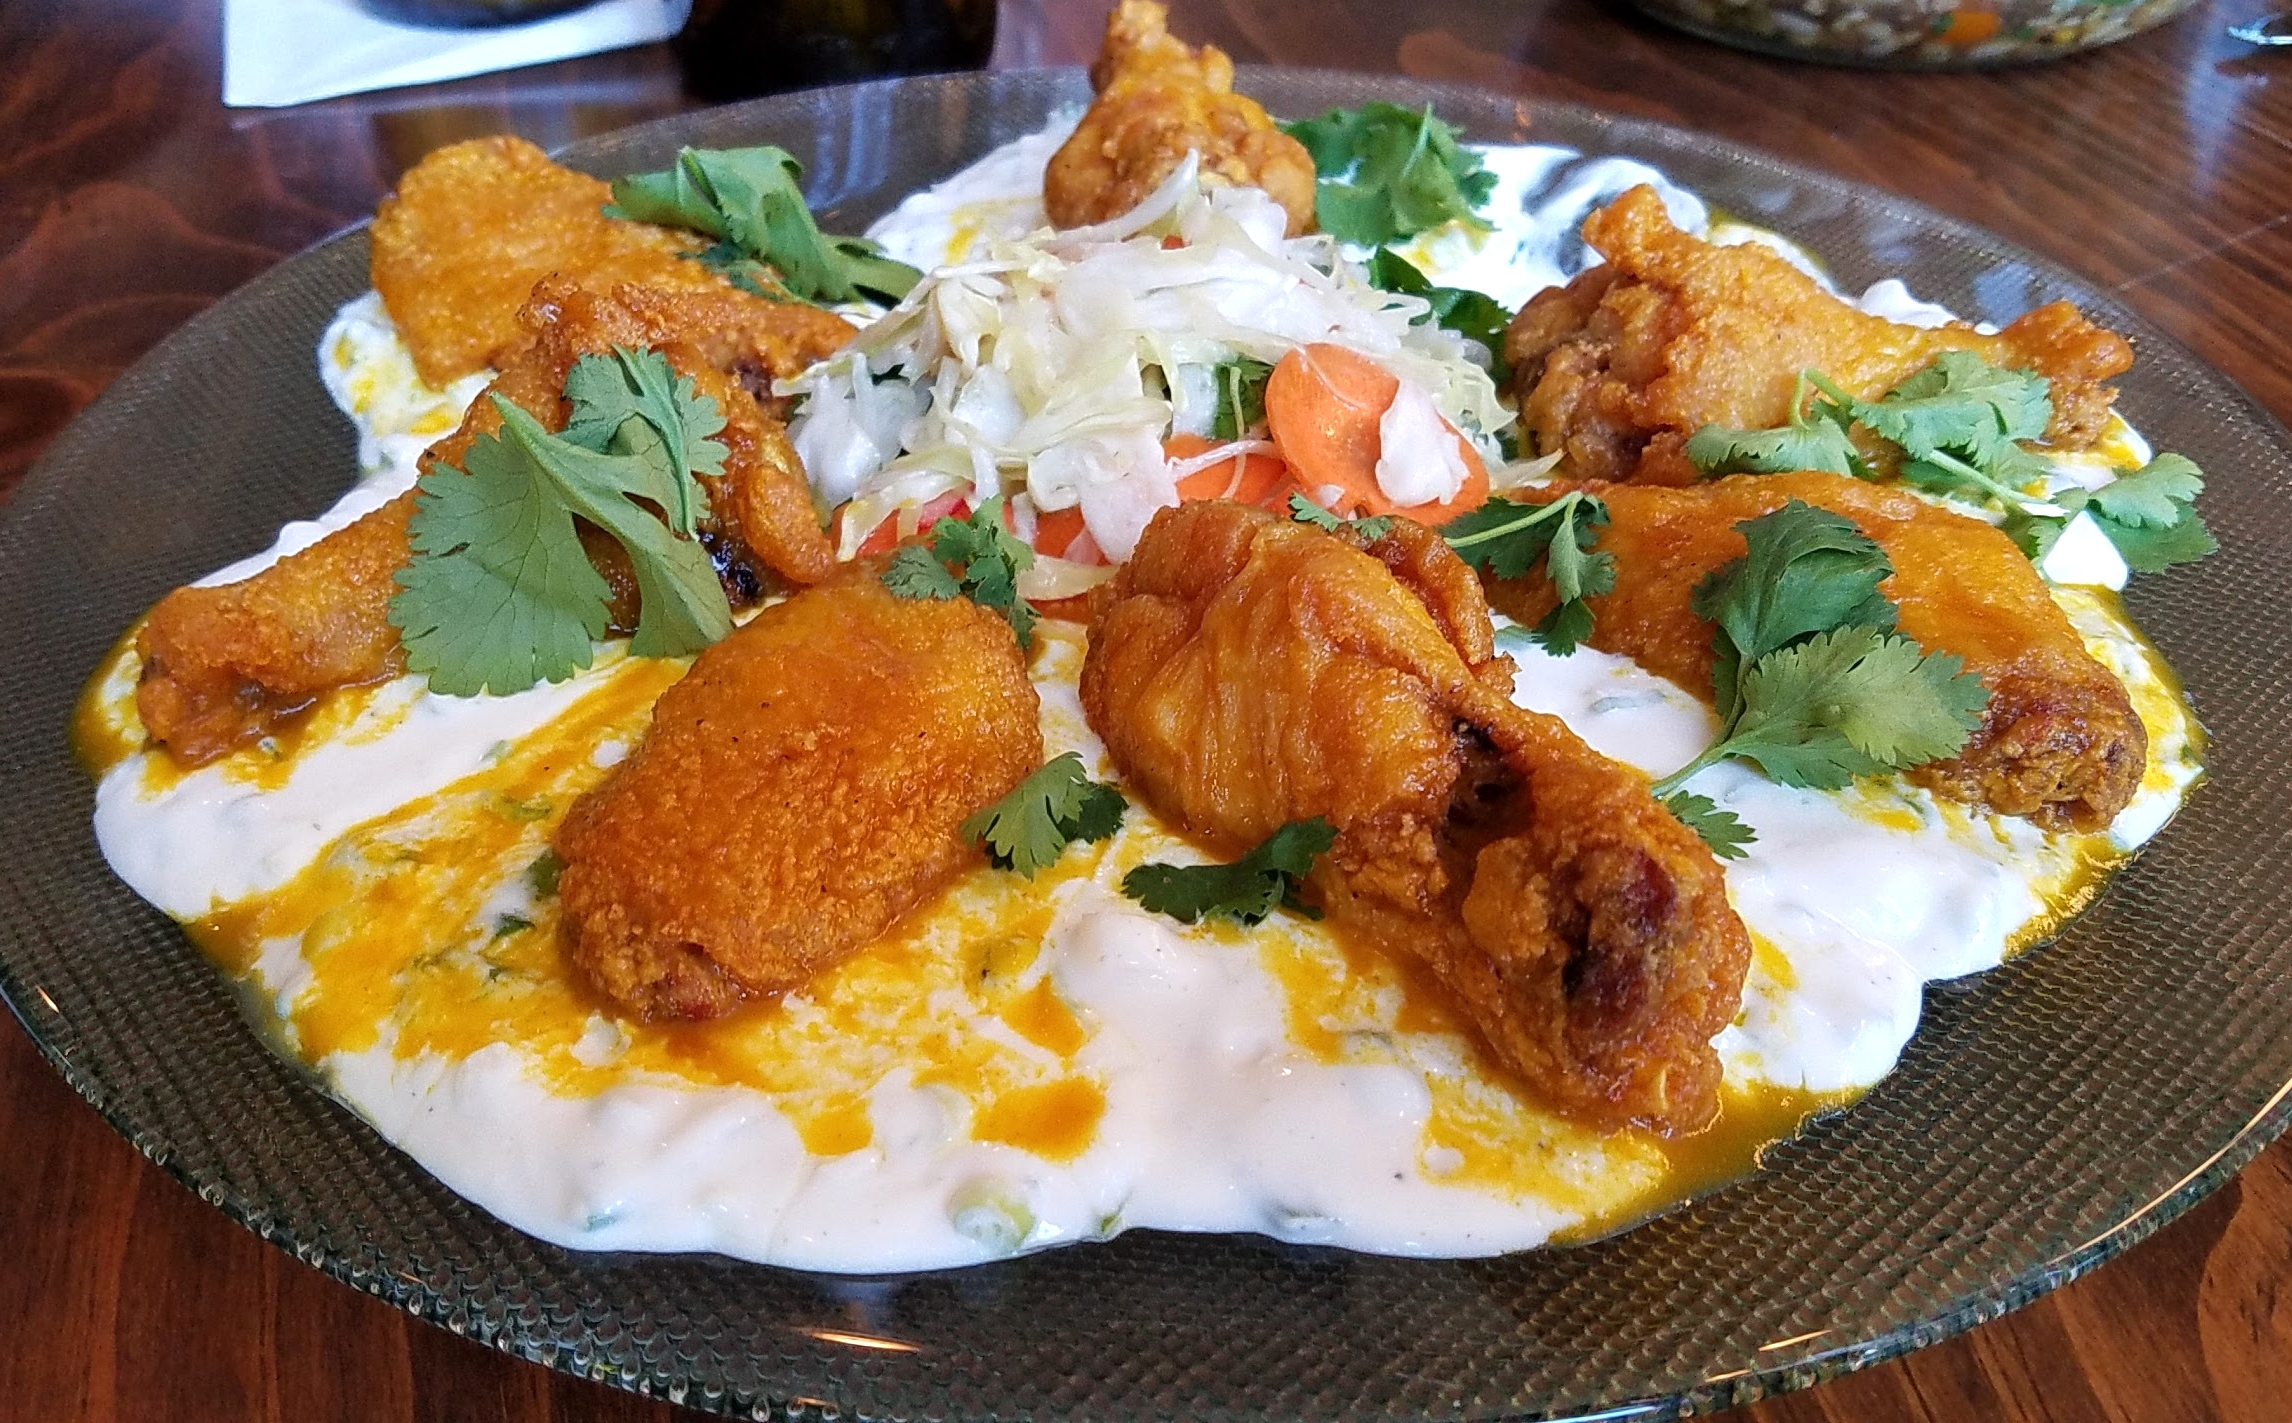 Crispy chicken wings with honey-aji amarillo sauce, Crow's Dairy   quark with scallions, and slaw